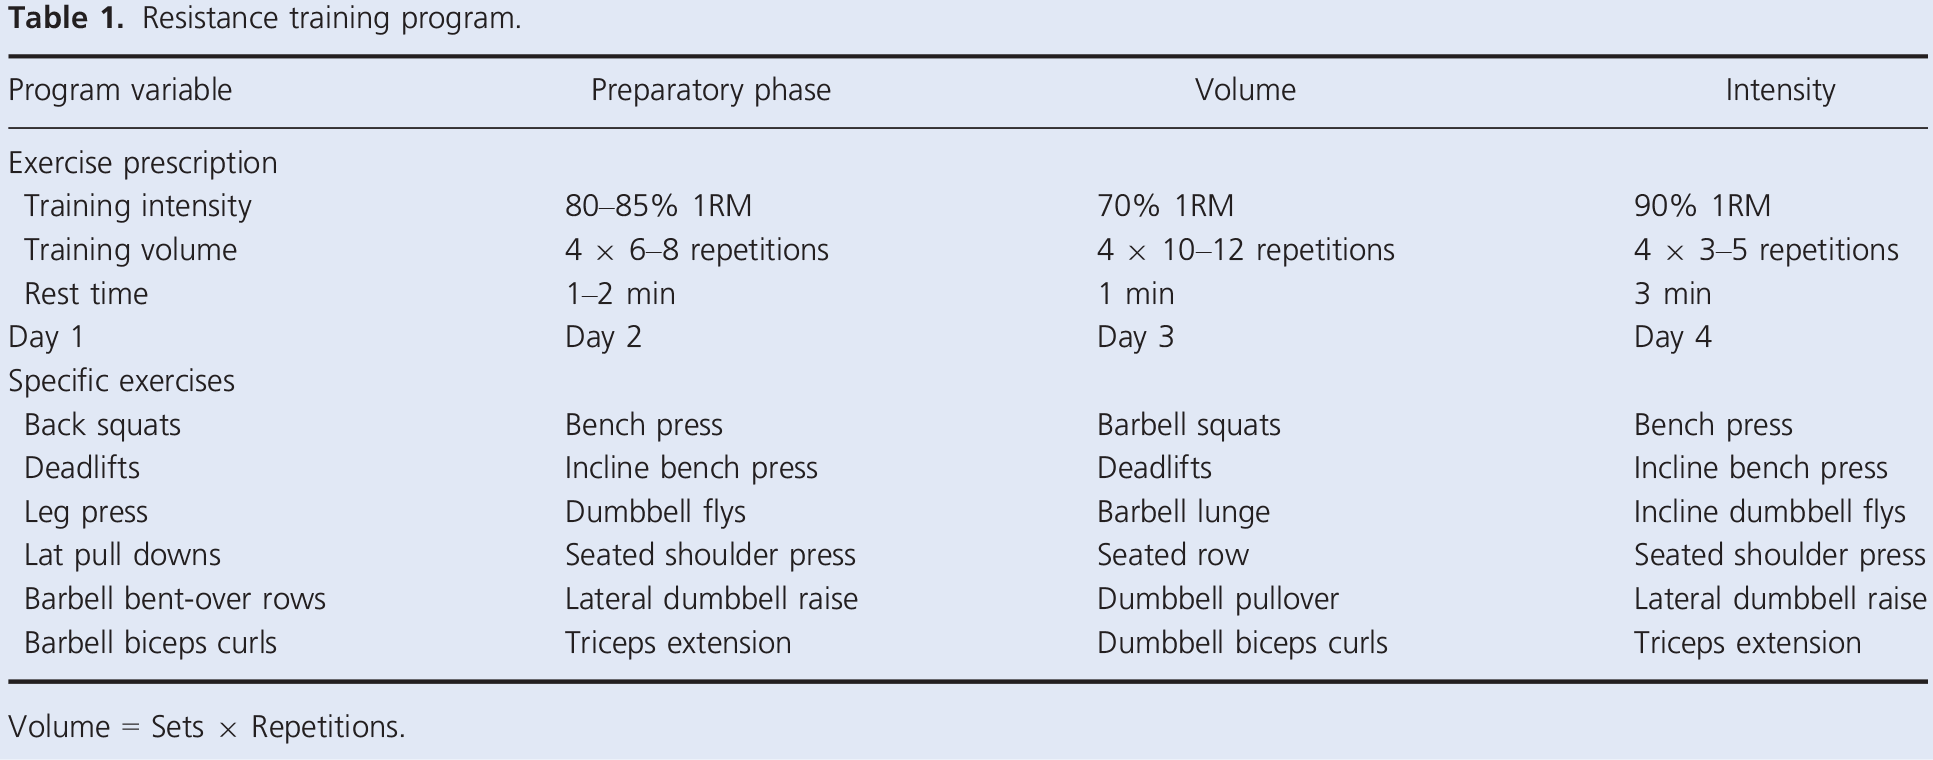 resistance training program (intensity vs volume)